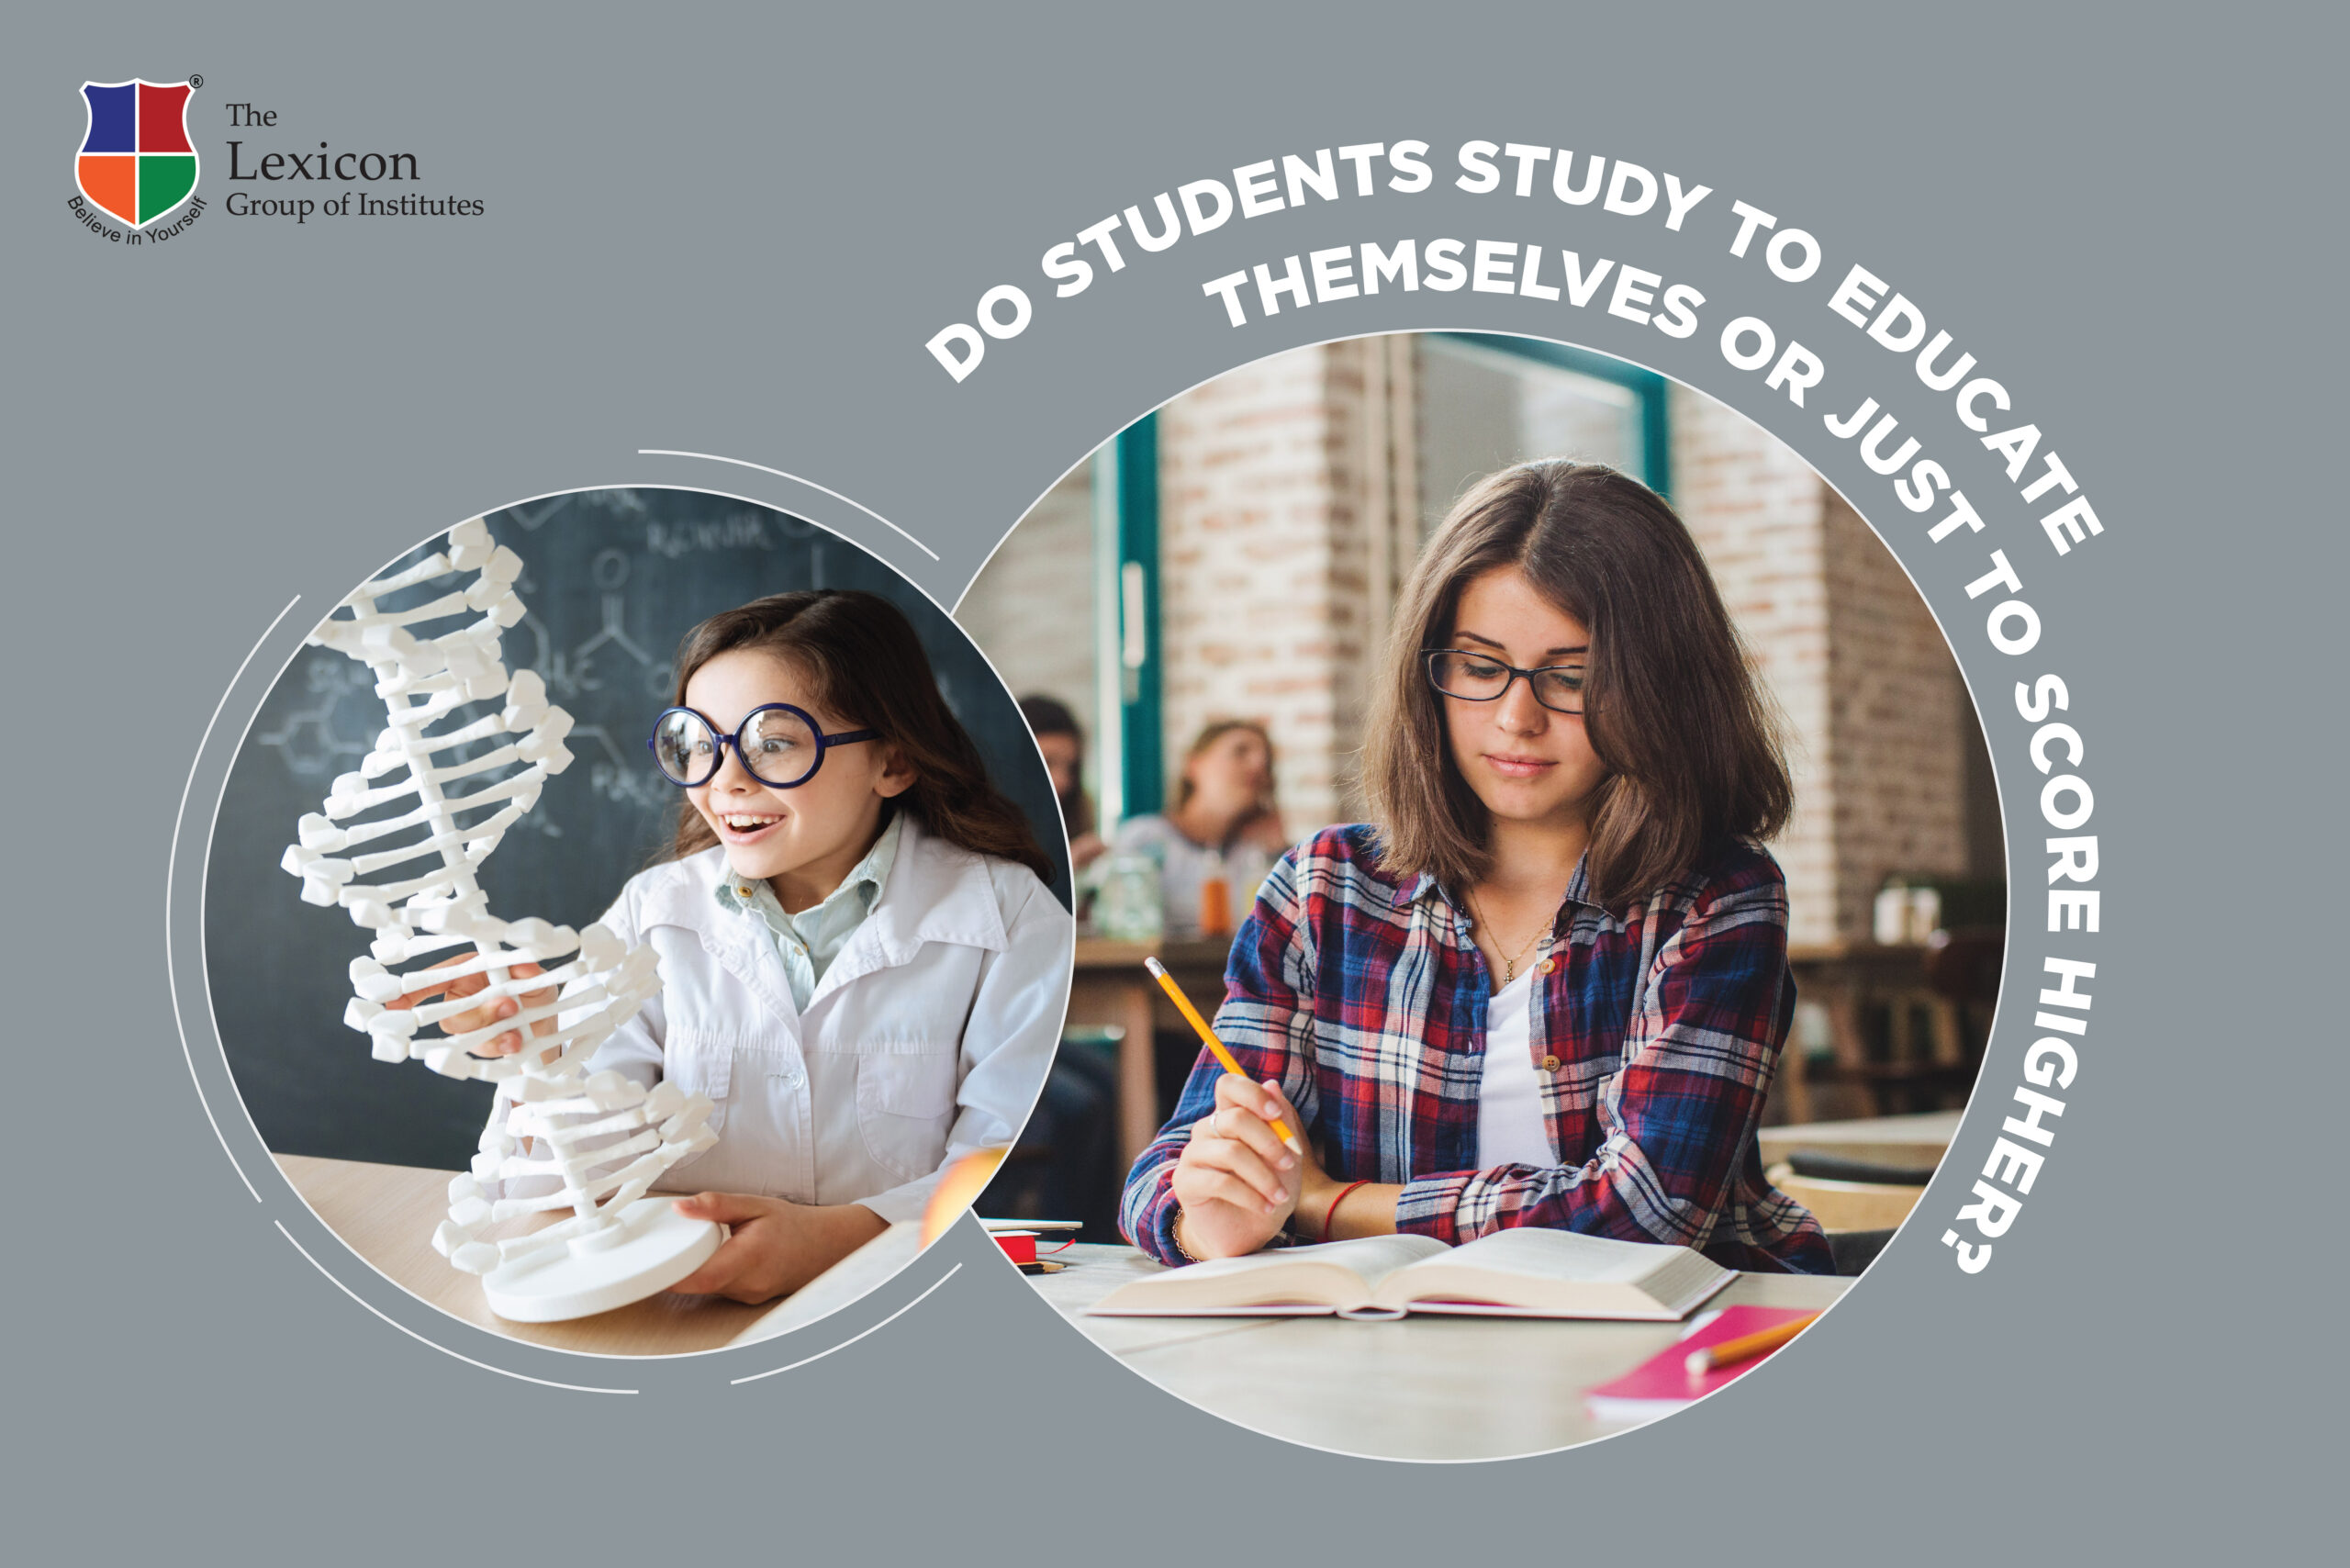 Do students study to educate themselves or just to score higher?